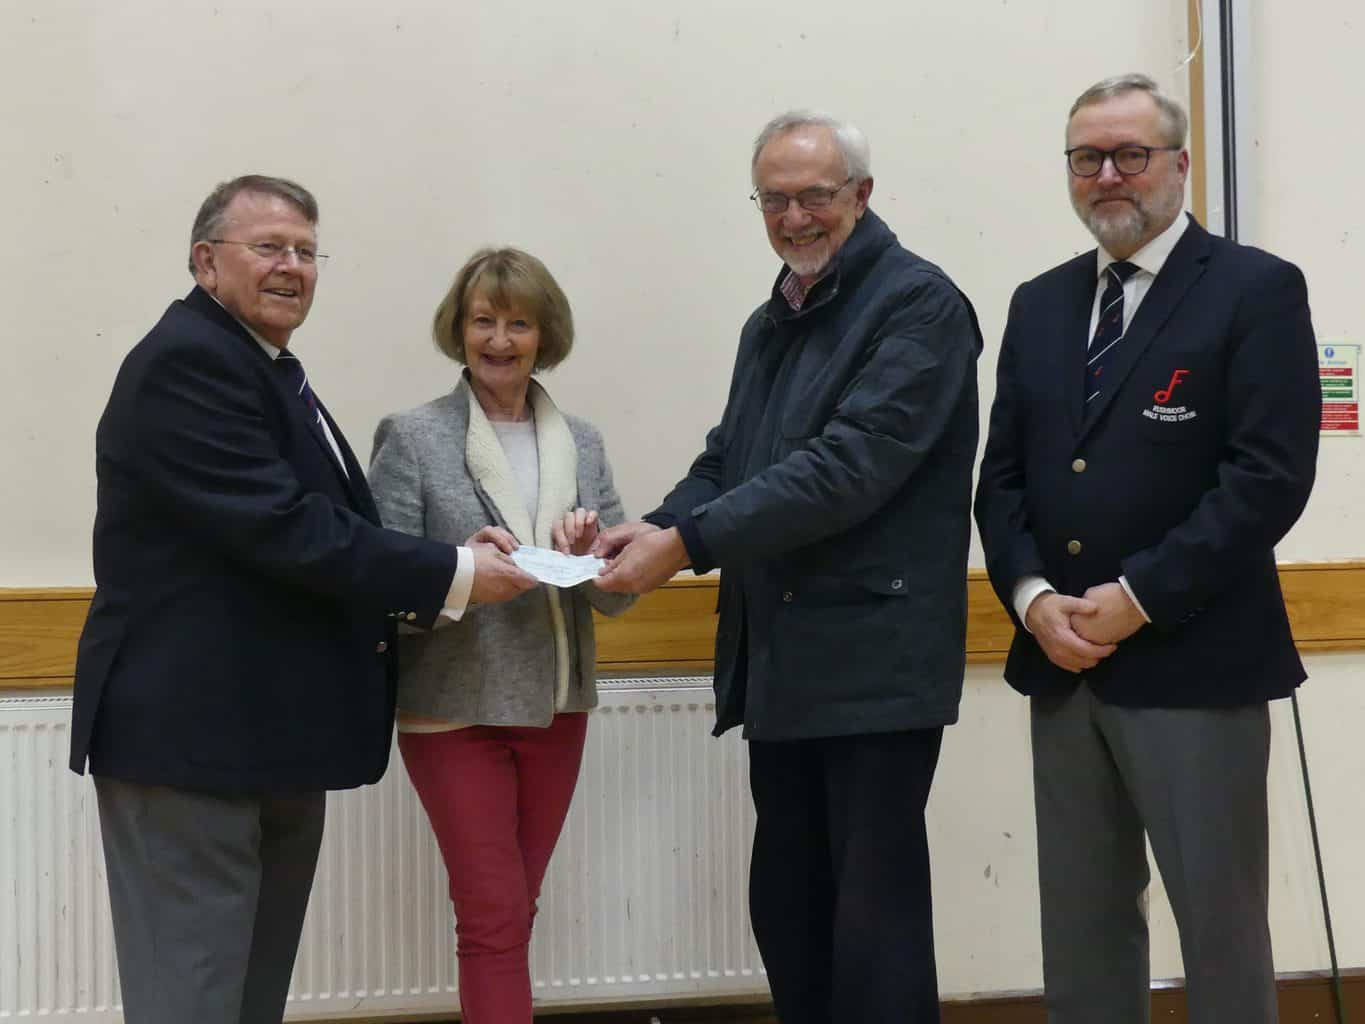 Donations from concert to fund Farnham defibrillator